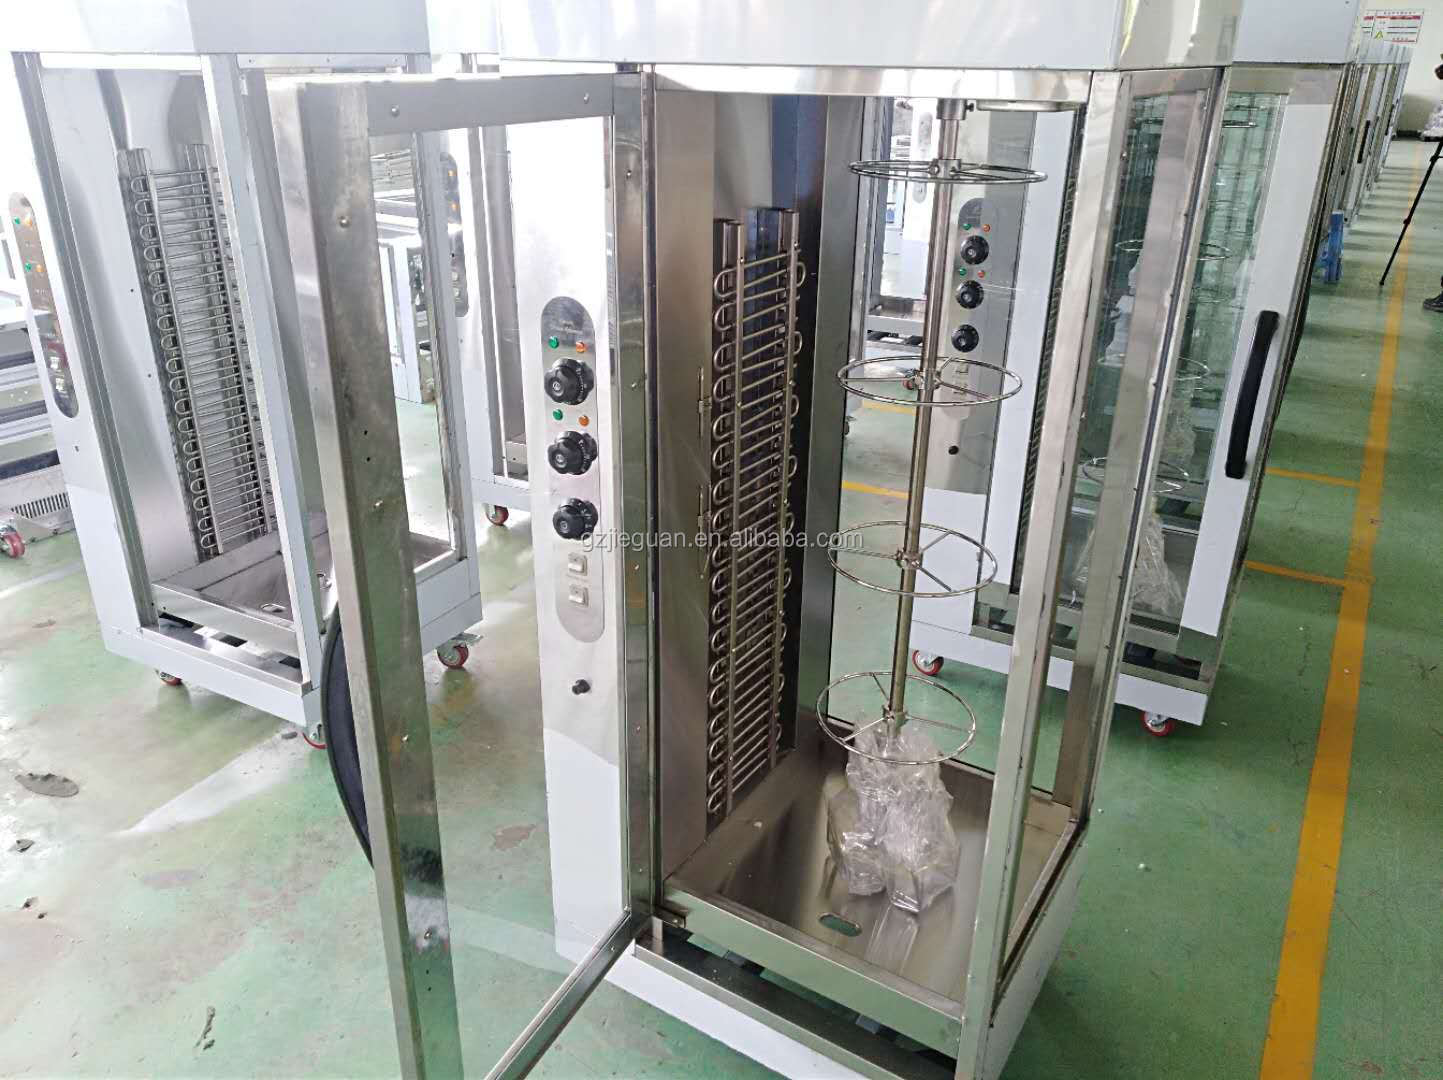 Commercial gas vertical rotary Chicken rotisserie EB-206